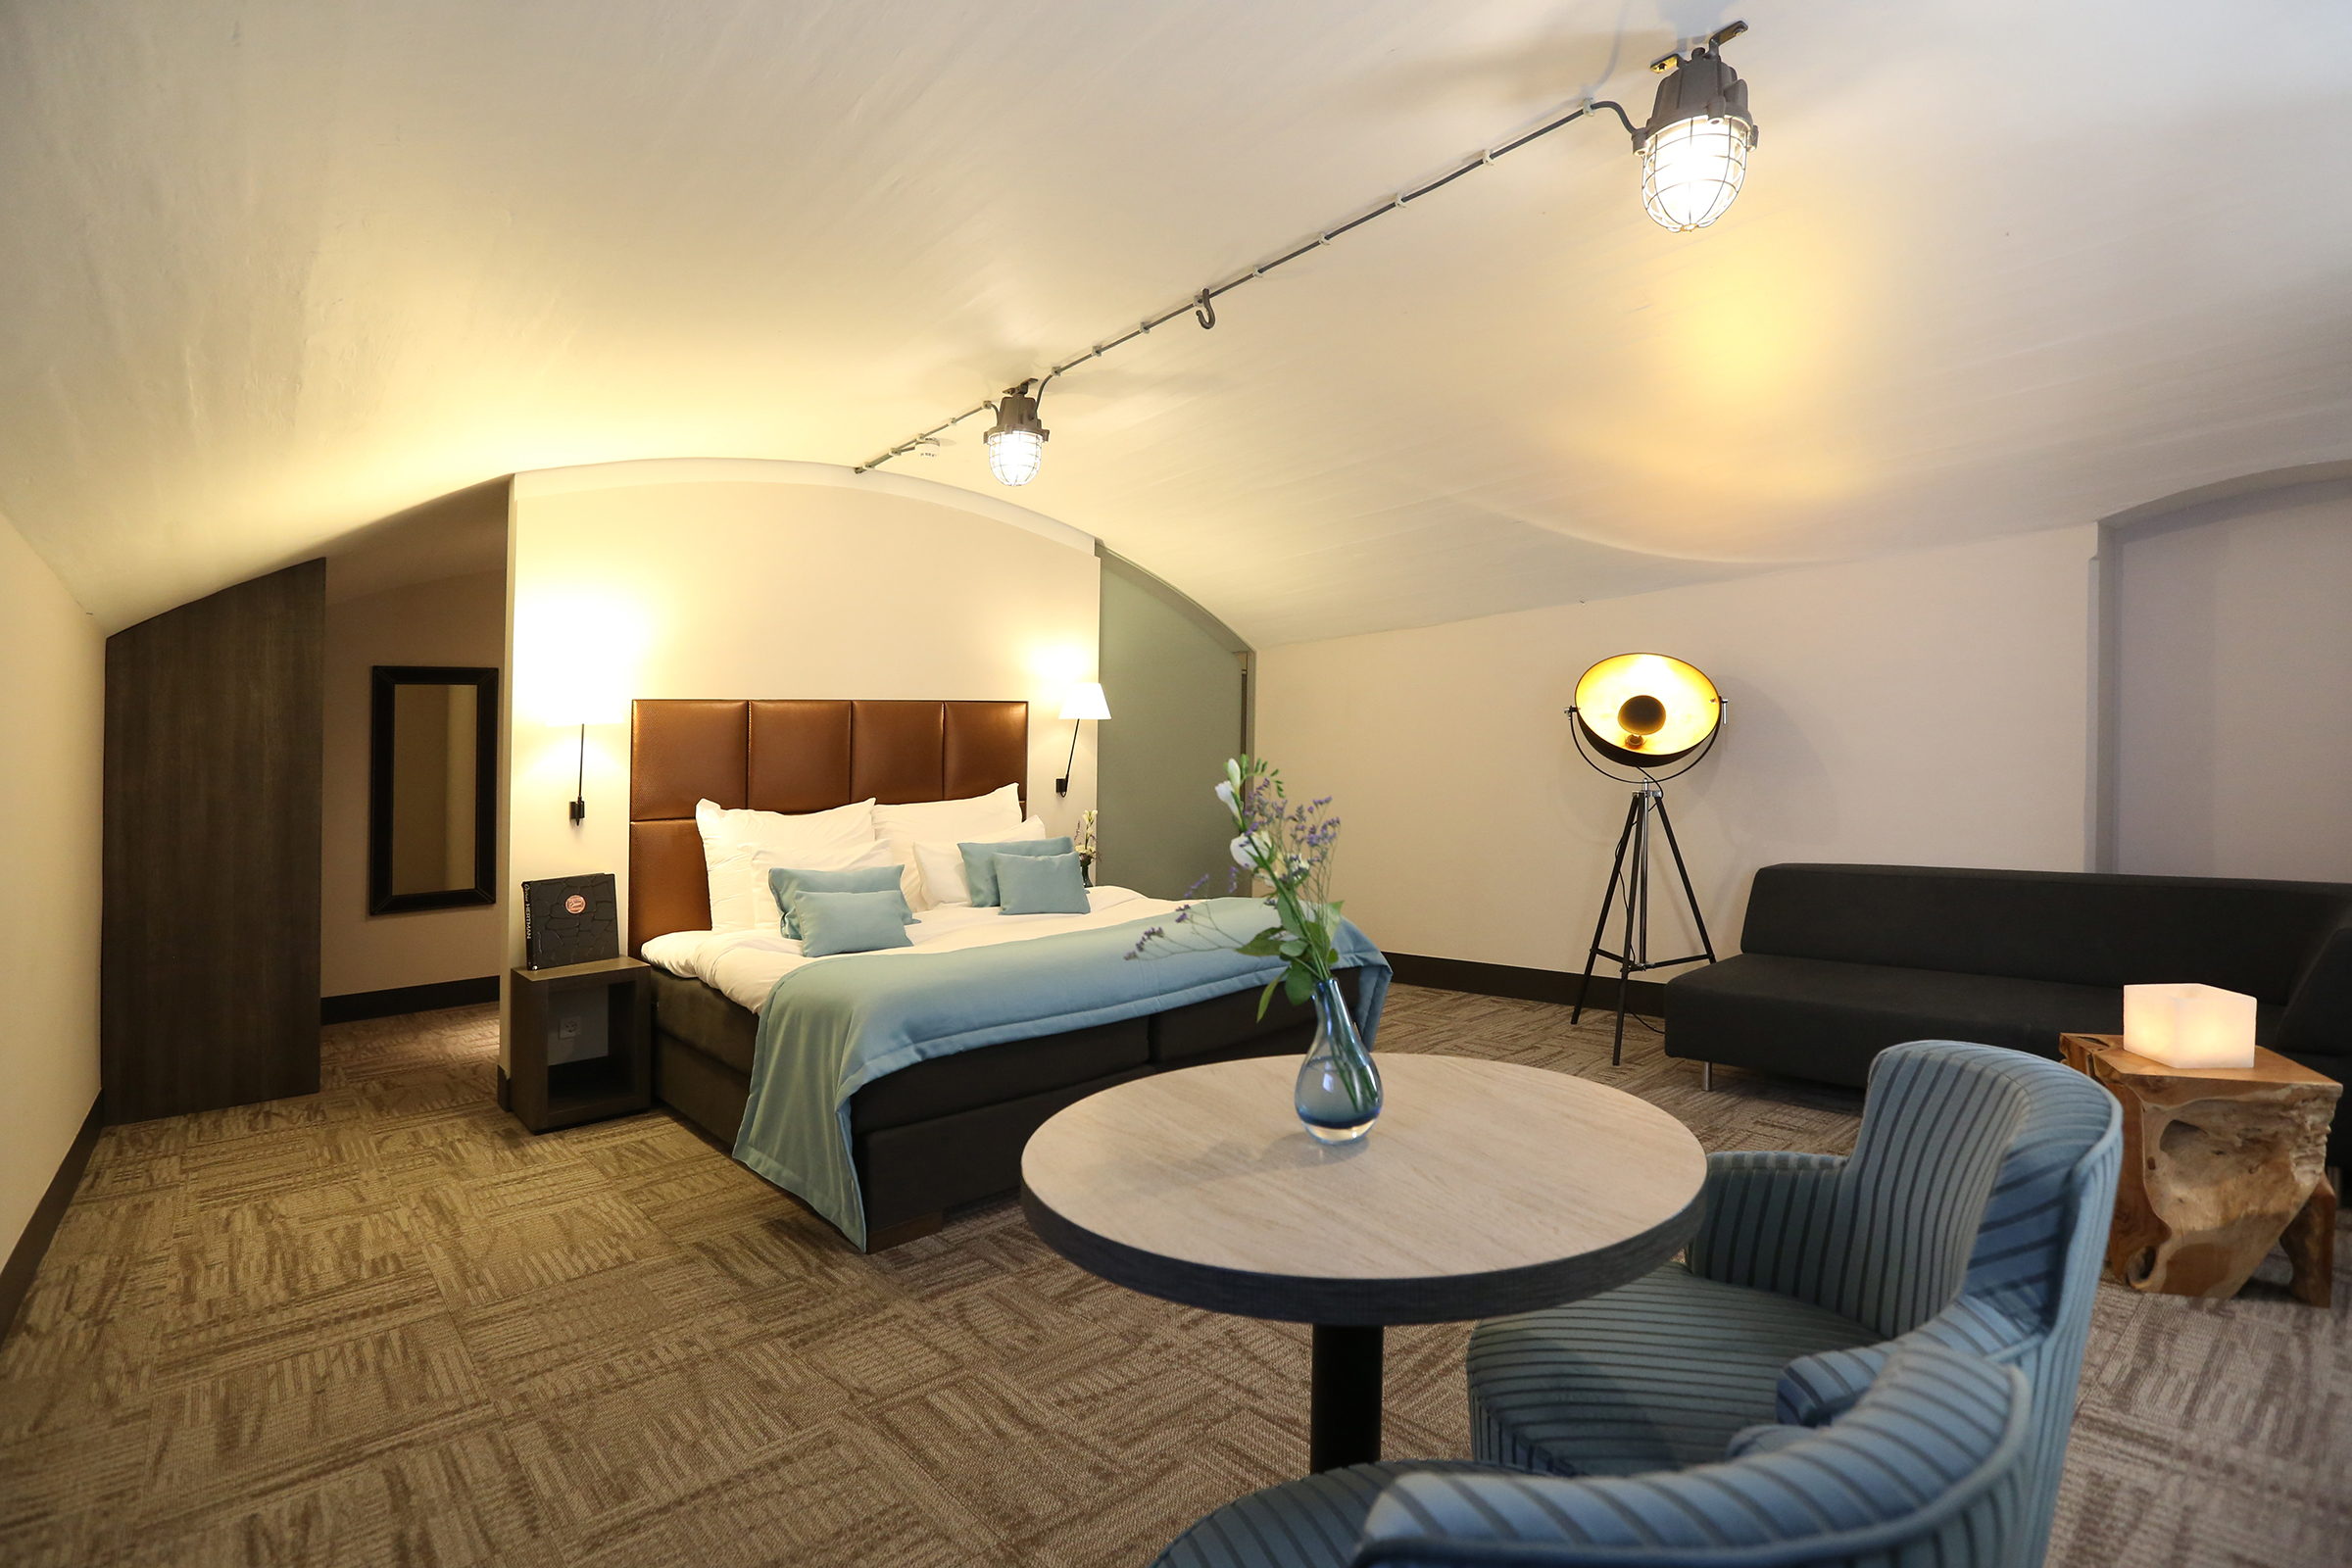 Luxe kamer in het fort - Fort Resort Beemster